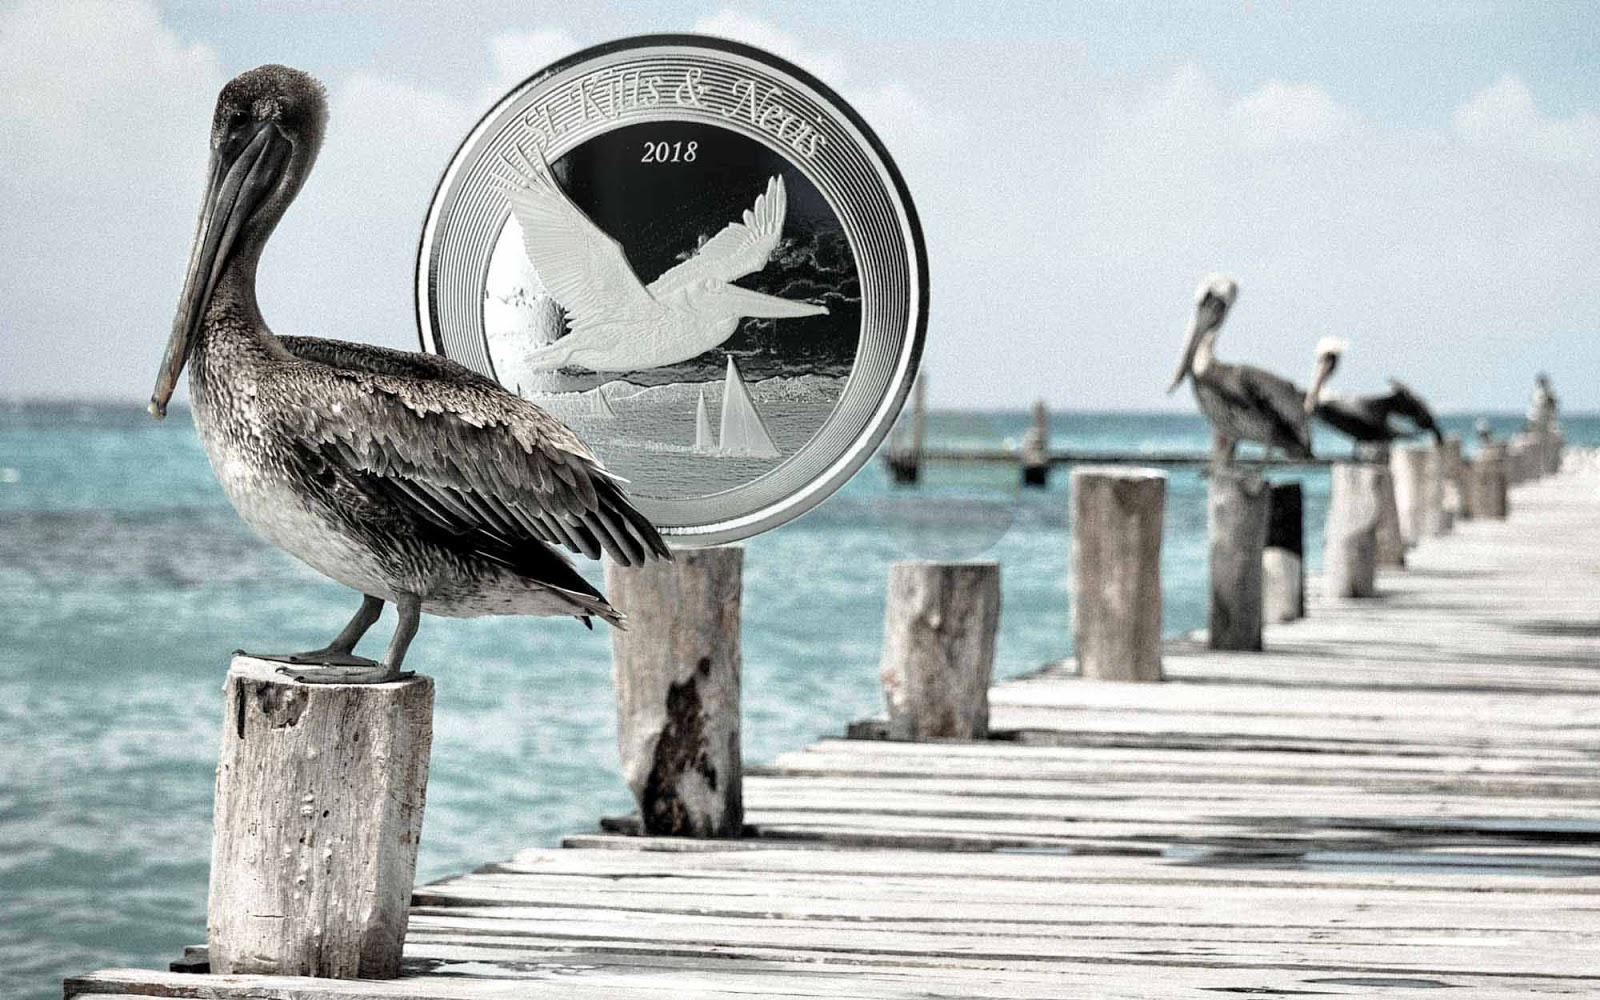 KITTS /& NEVIS 2018 BROWN PELICAN 1 OZ .999 SILVER  COIN ST